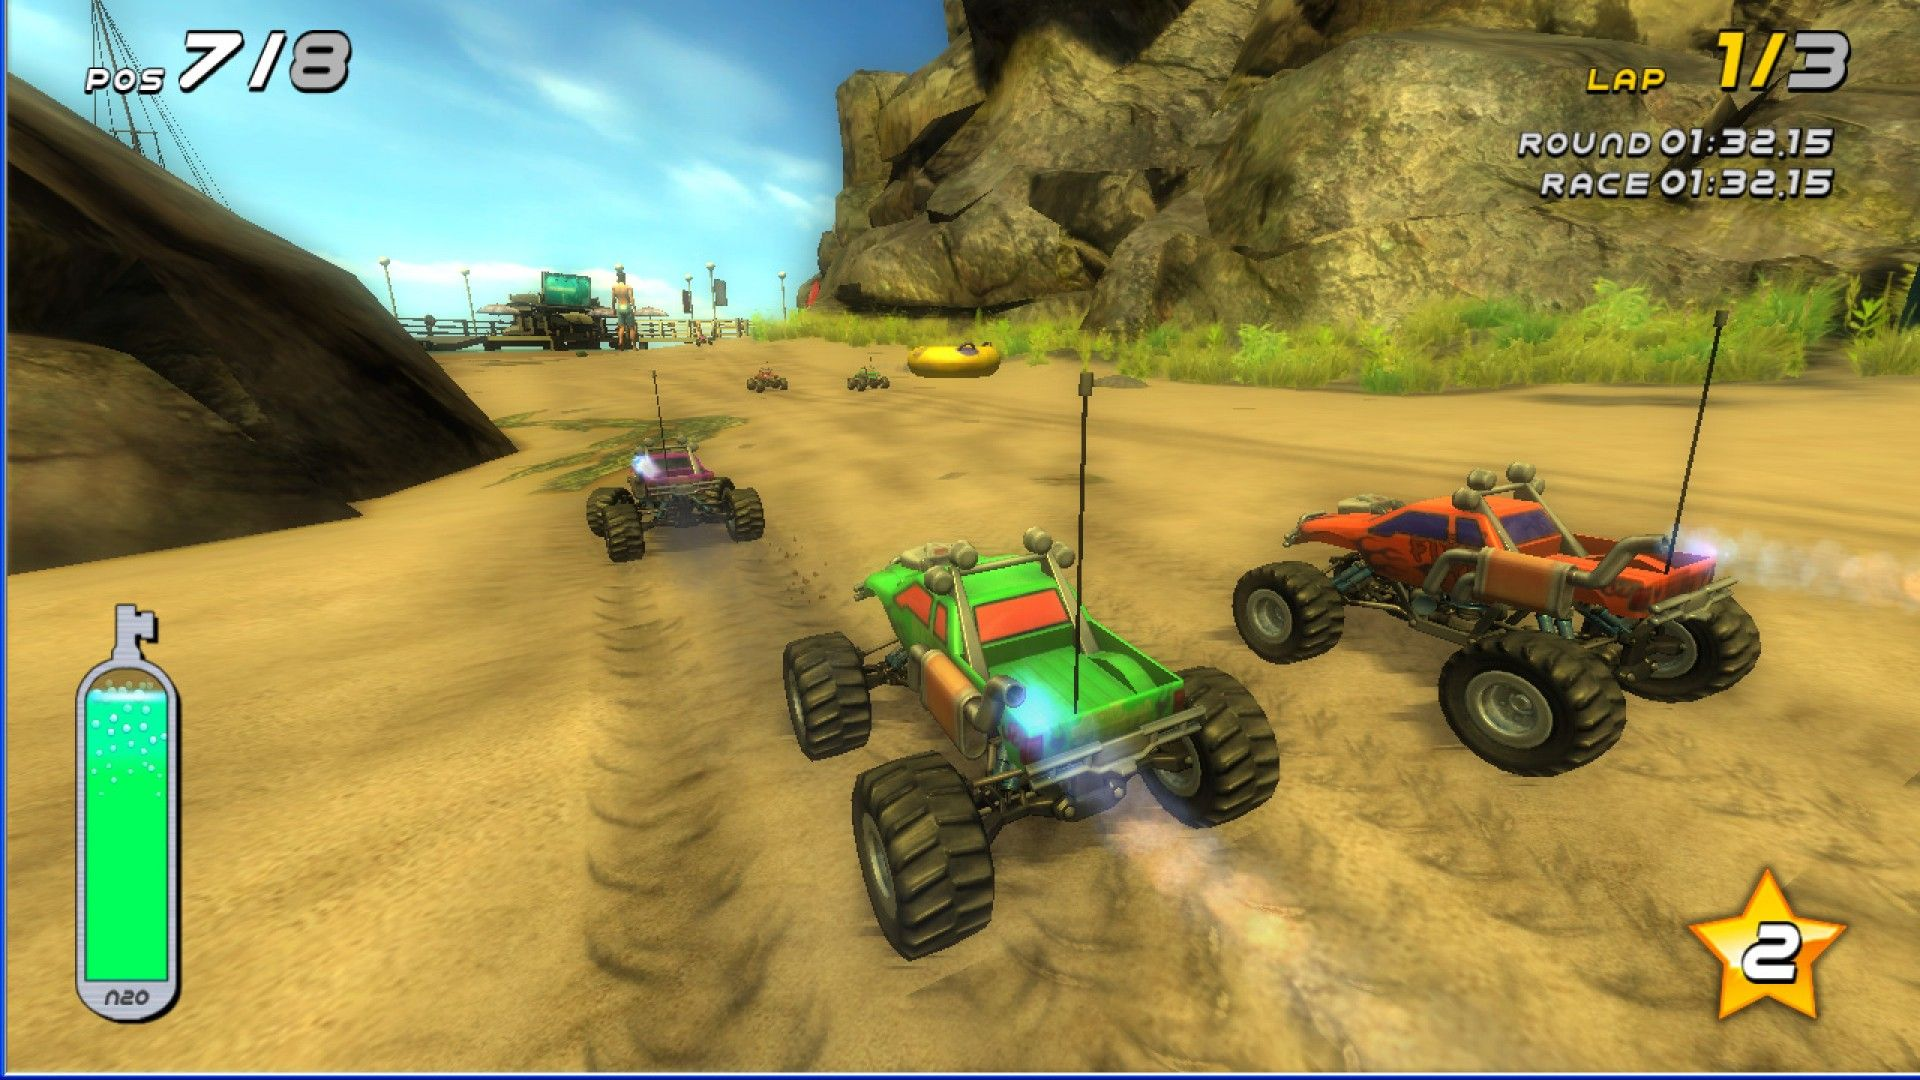 Smash cars free download pc game full version.